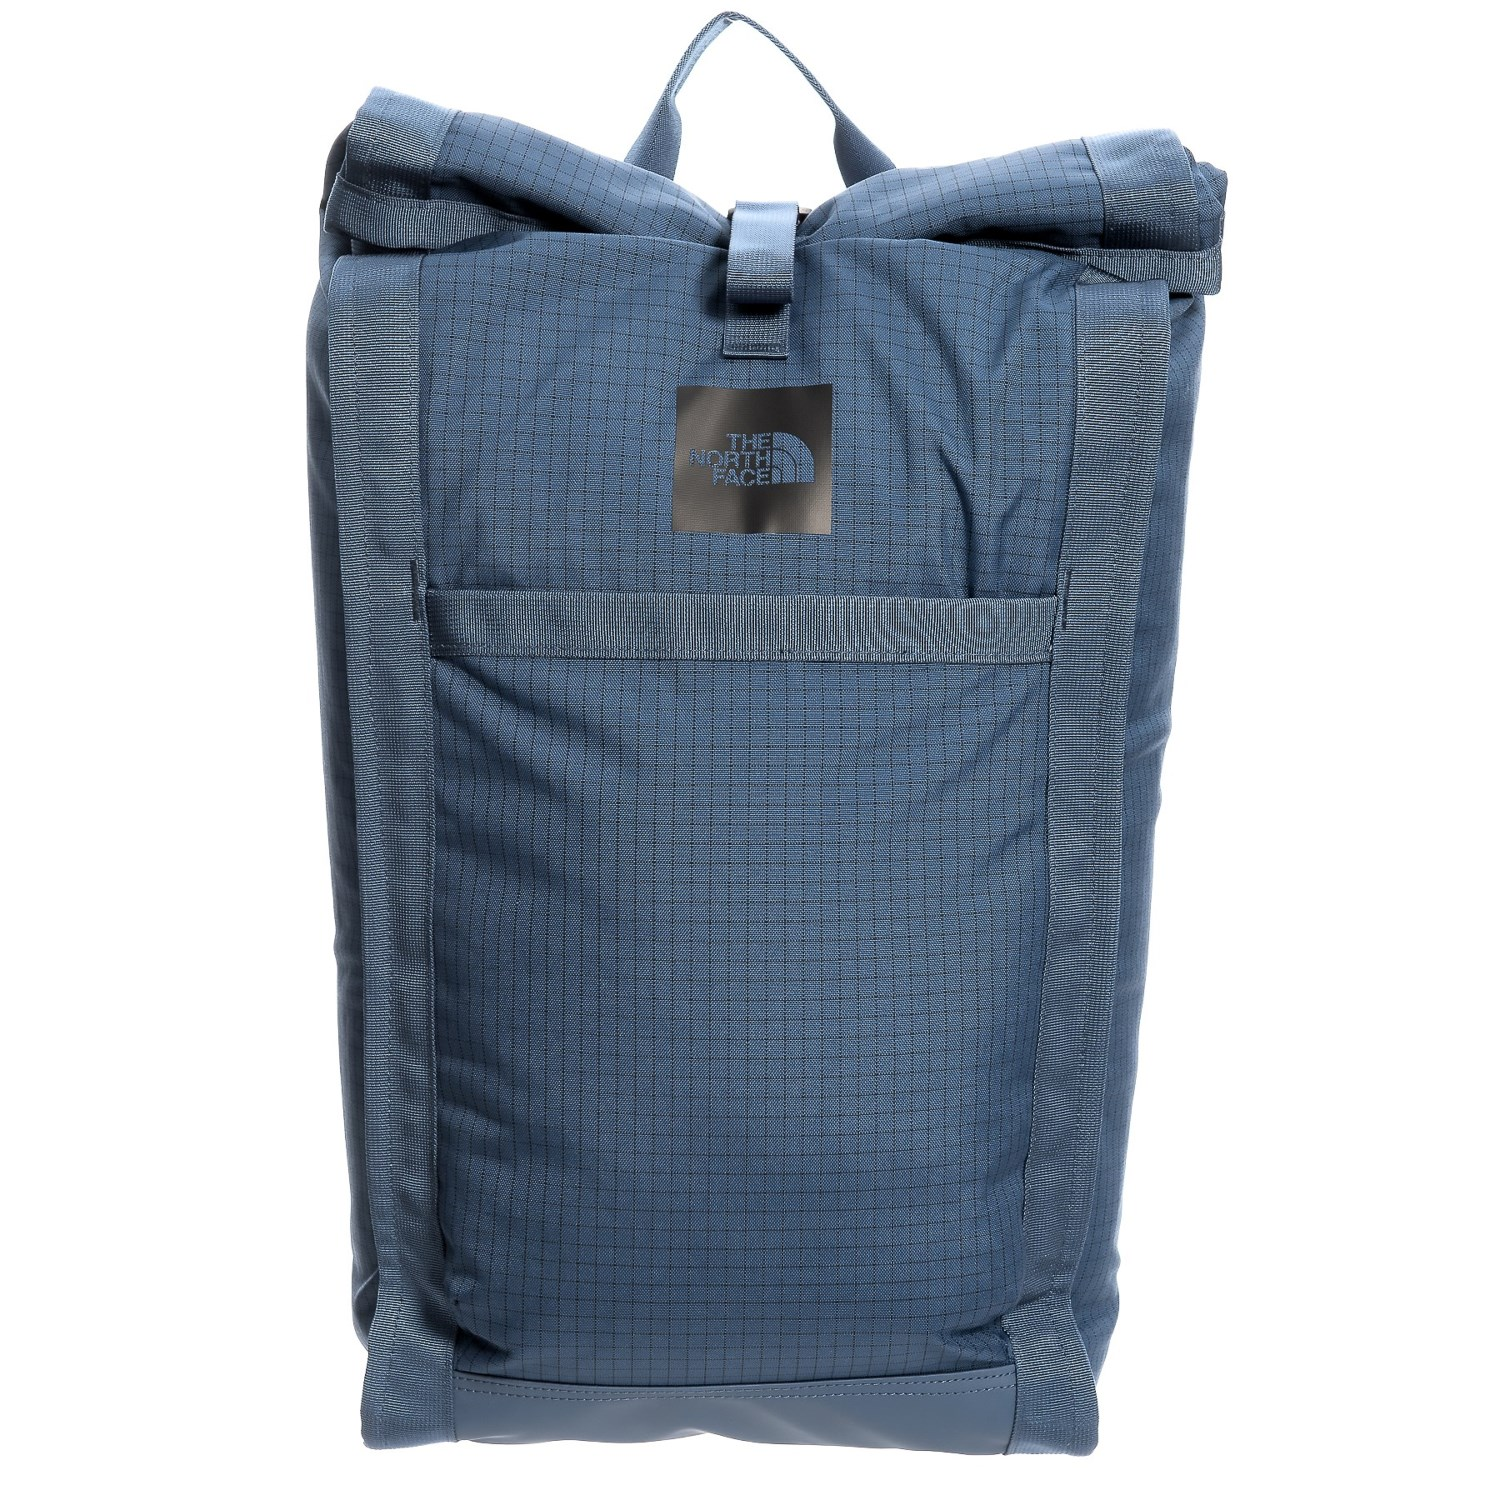 761ccc493 The North Face Homestead Roadsoda 43L Backpack